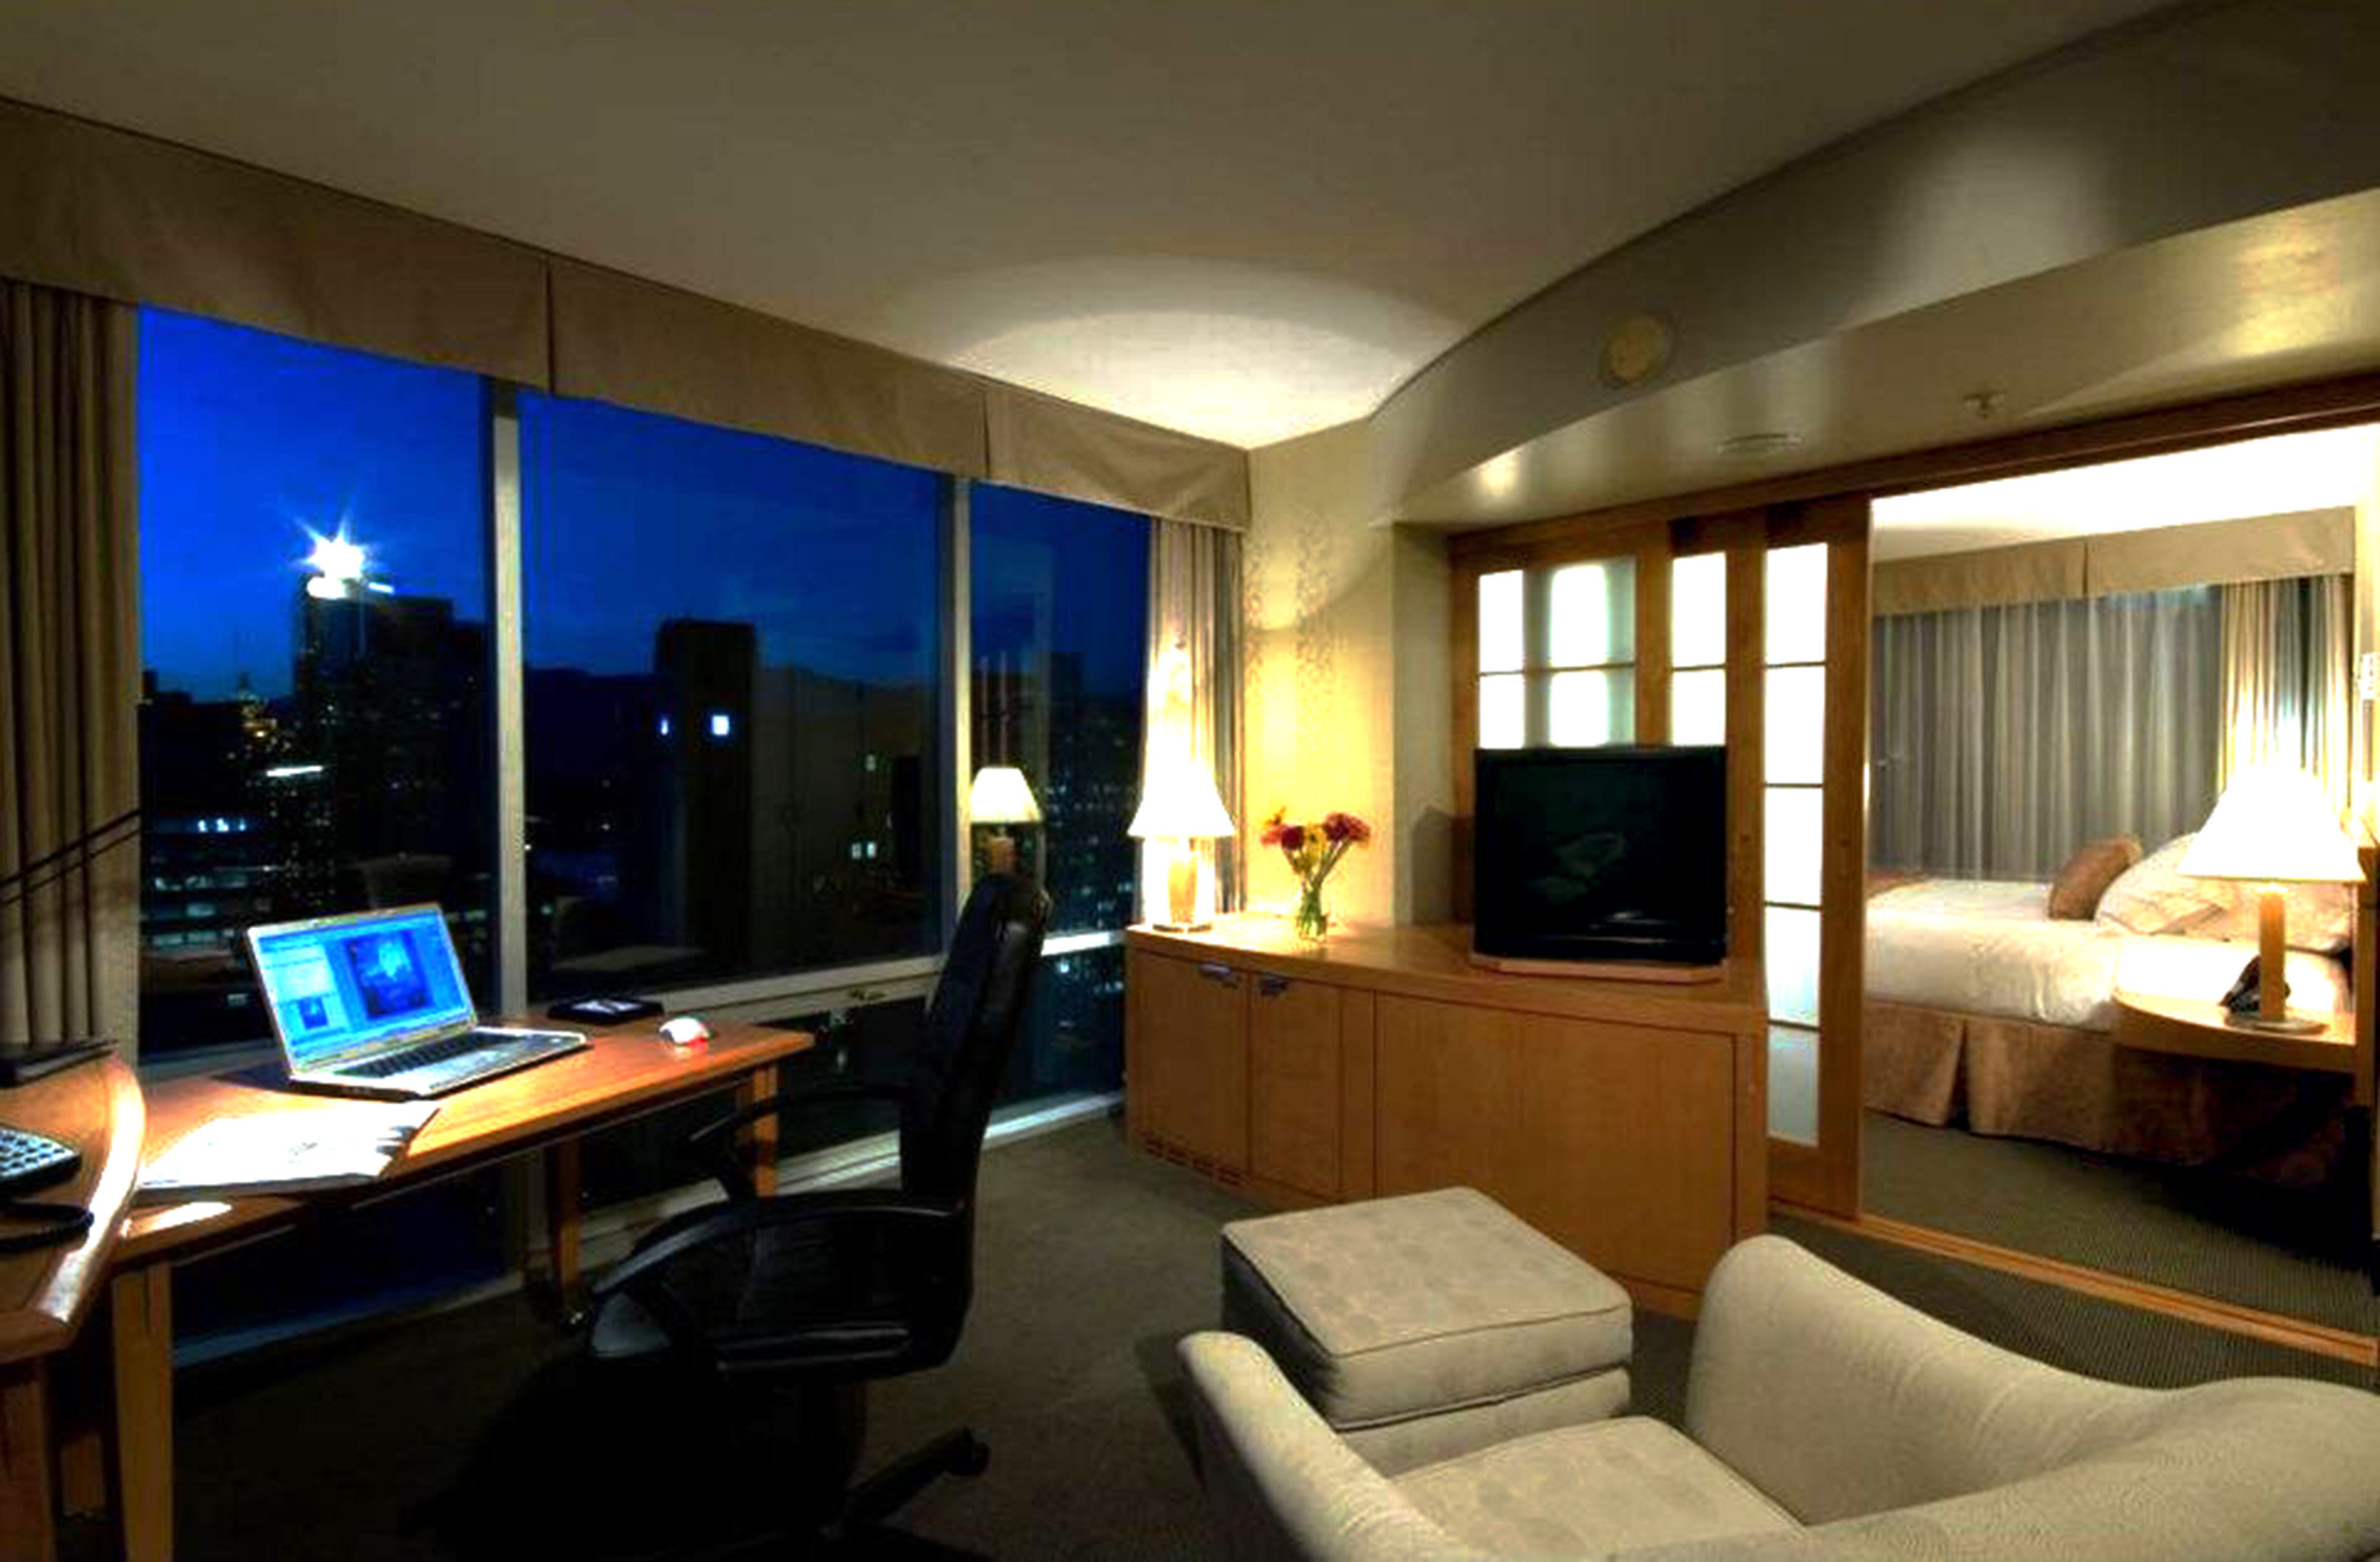 Bedroom Classic Resort Scenic views property desk living room condominium Suite home recreation room Villa flat lamp